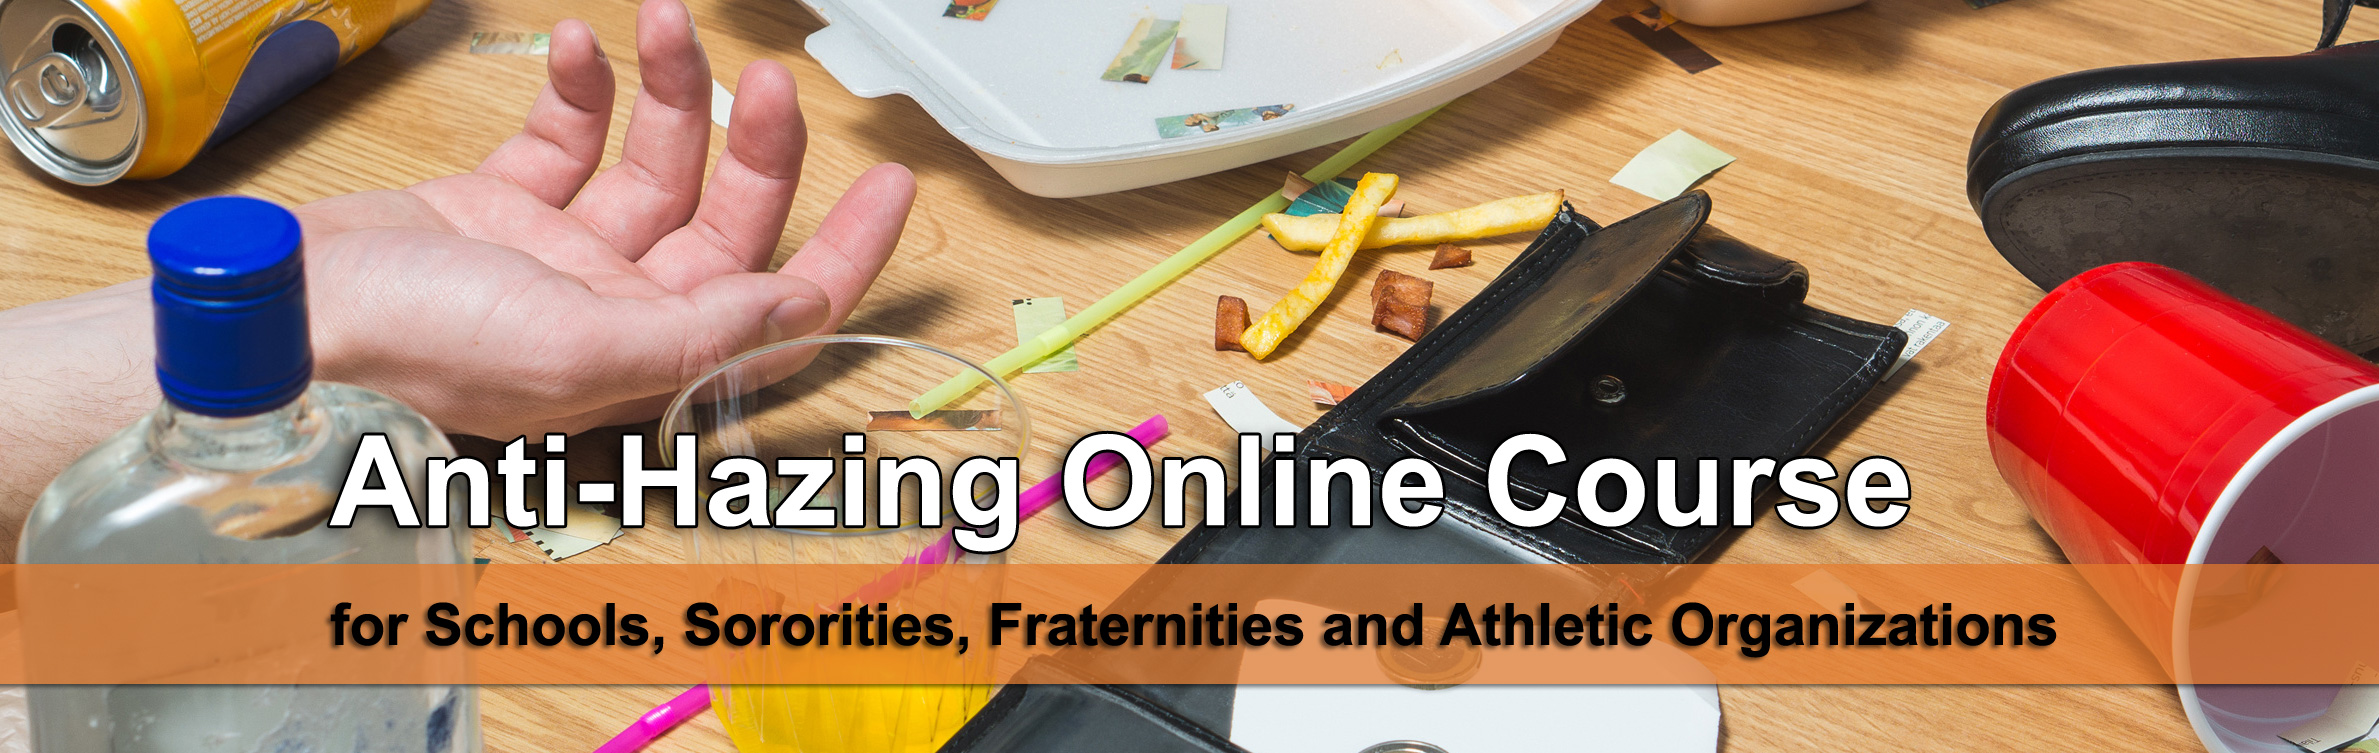 Anti-Hazing Online Course for Sororities, Fraternities, and Organizations